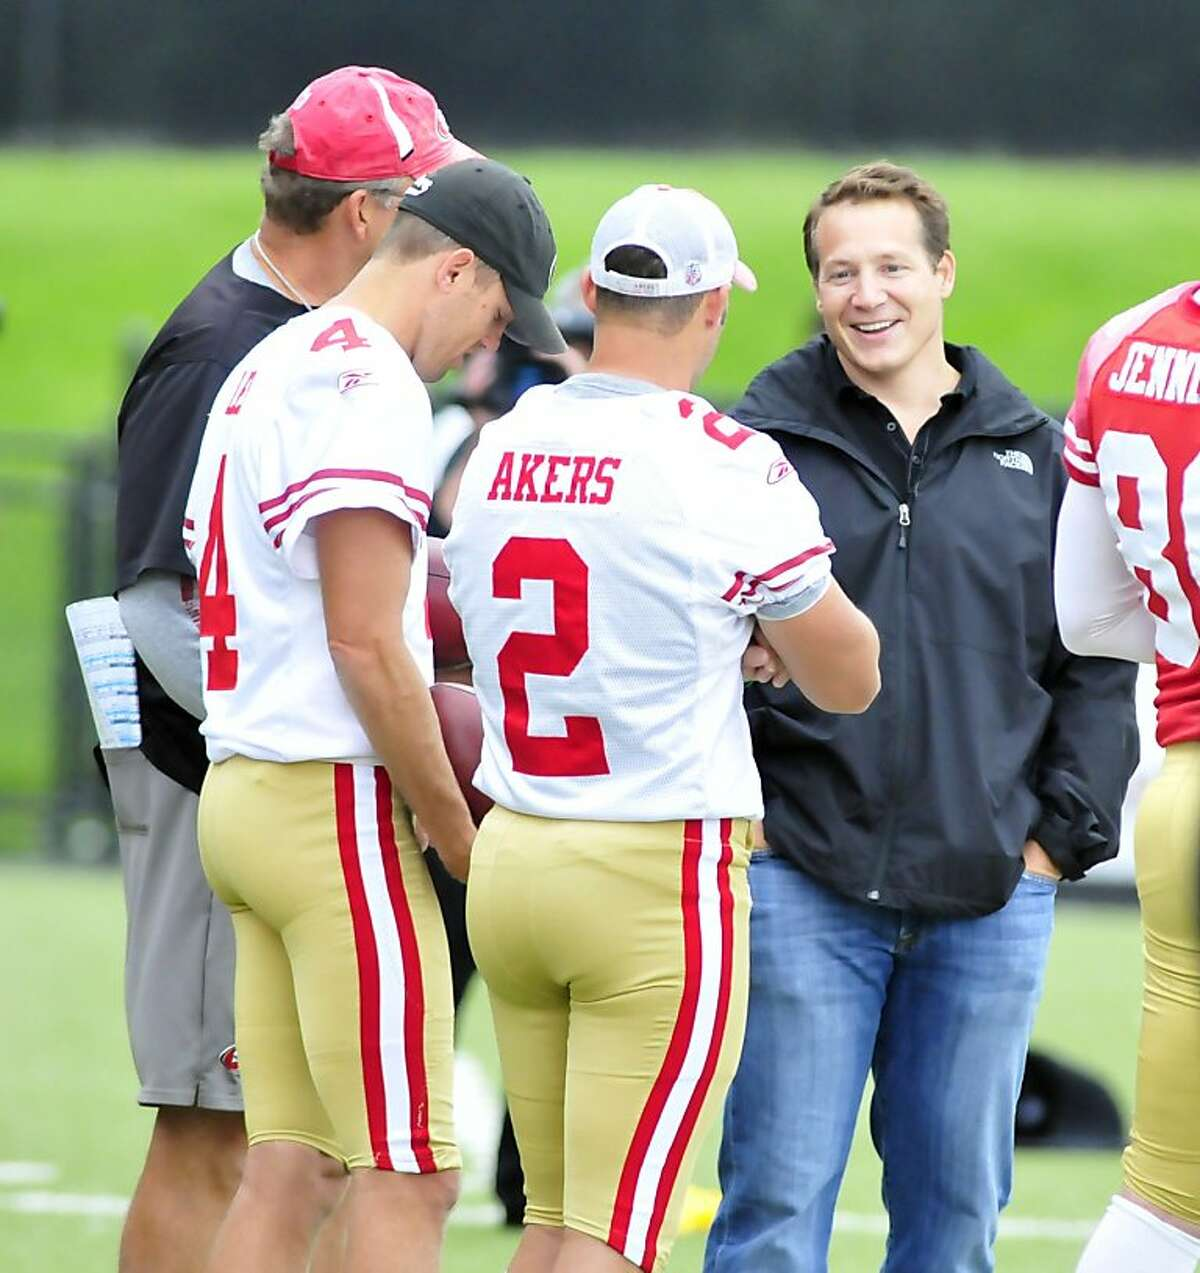 YOUNGSTOWN, OHIO - SEPTEMBER 29, 2011: Former head coach Eric Mangini of the New York Jets and Cleveland Browns smiles while talking with kicker David Akers #2 and punter Andy Lee #4 of the San Francisco 49ers during practice at Stambaugh Stadium at Youngstown State University in Youngstown, Ohio on September 29, 2011. (Photo by David Dermer/Diamond Images/Getty Images)